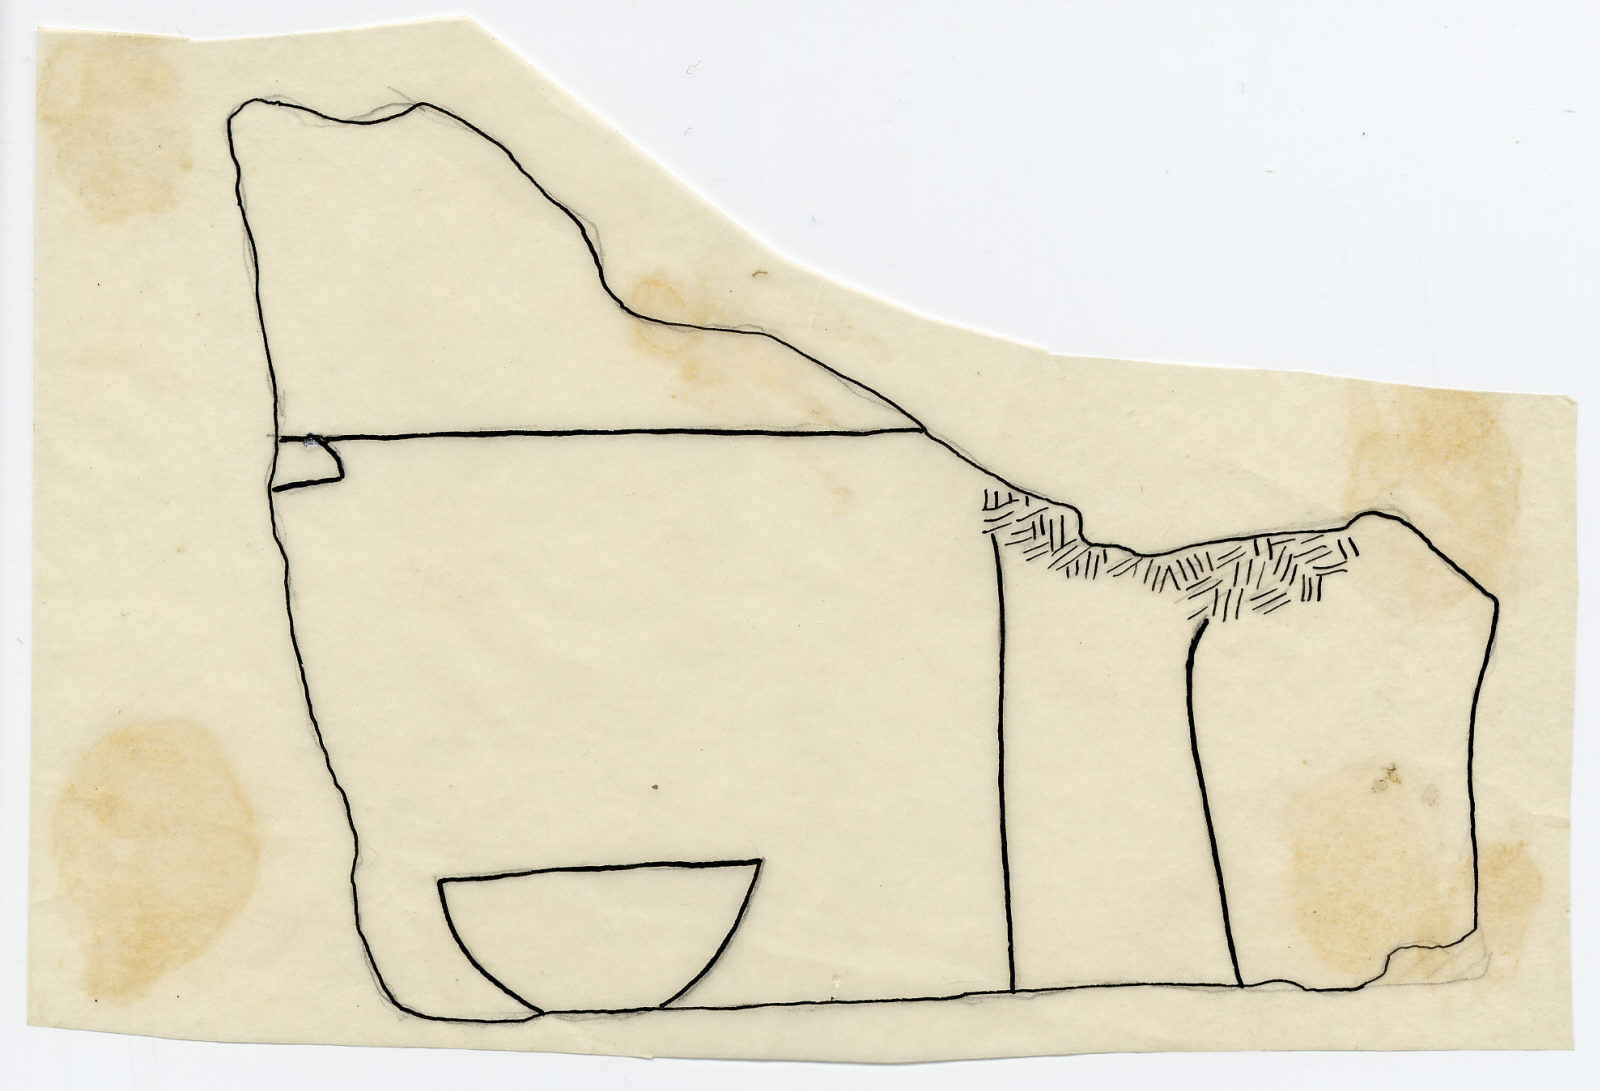 Drawings: Avenue G 4: fragment of relief